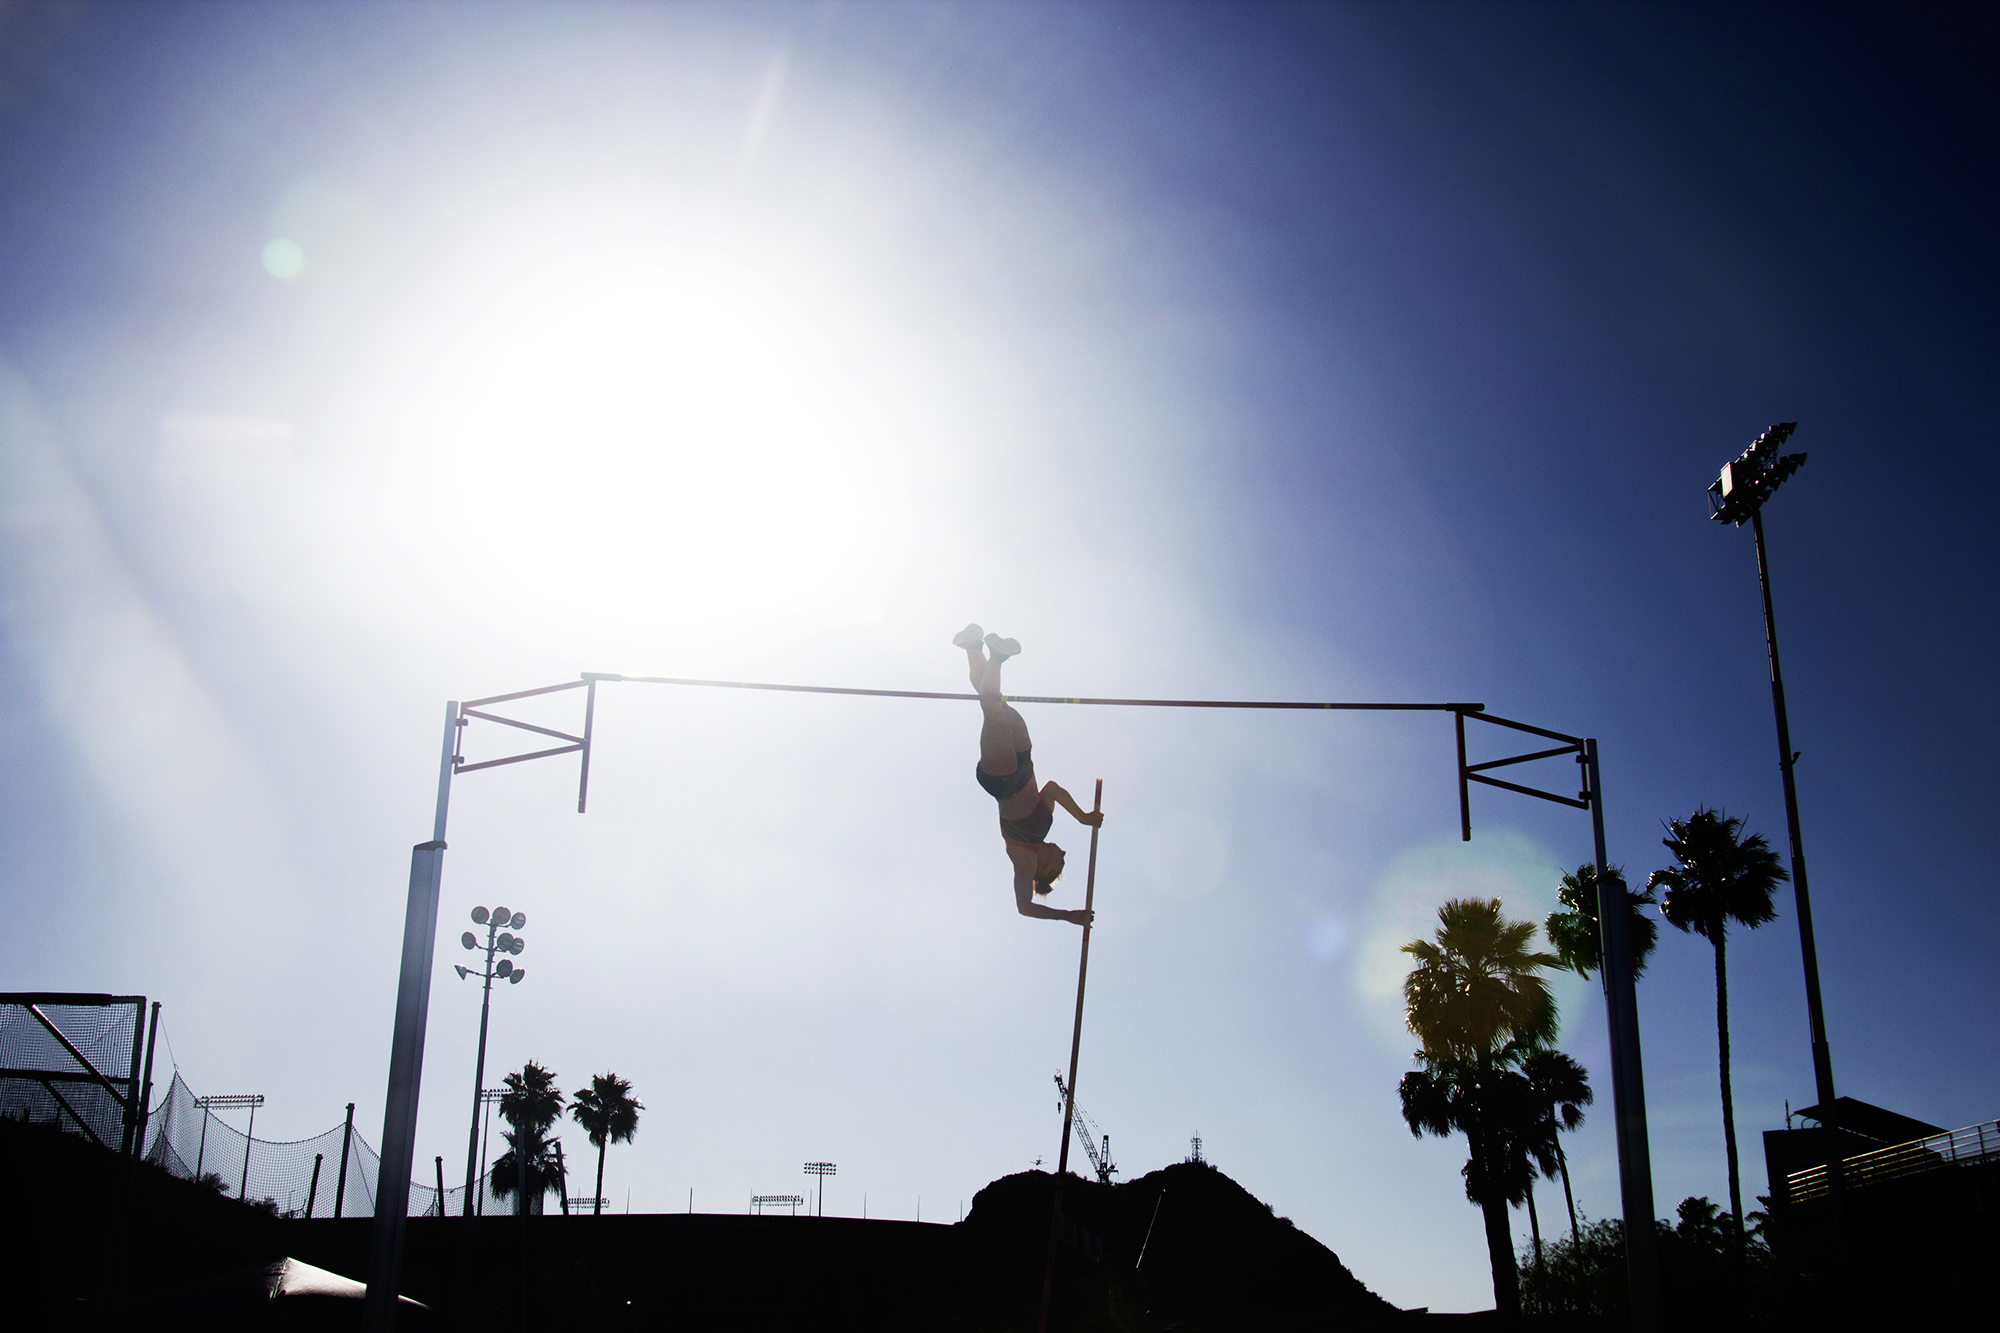 Senior Natalia Bartnovskaya of the University of Kansas, placed second in pole vaulting. Various schools gathered to compete in Tempe, AZ, for the Sun Angels Classic Track Meet.